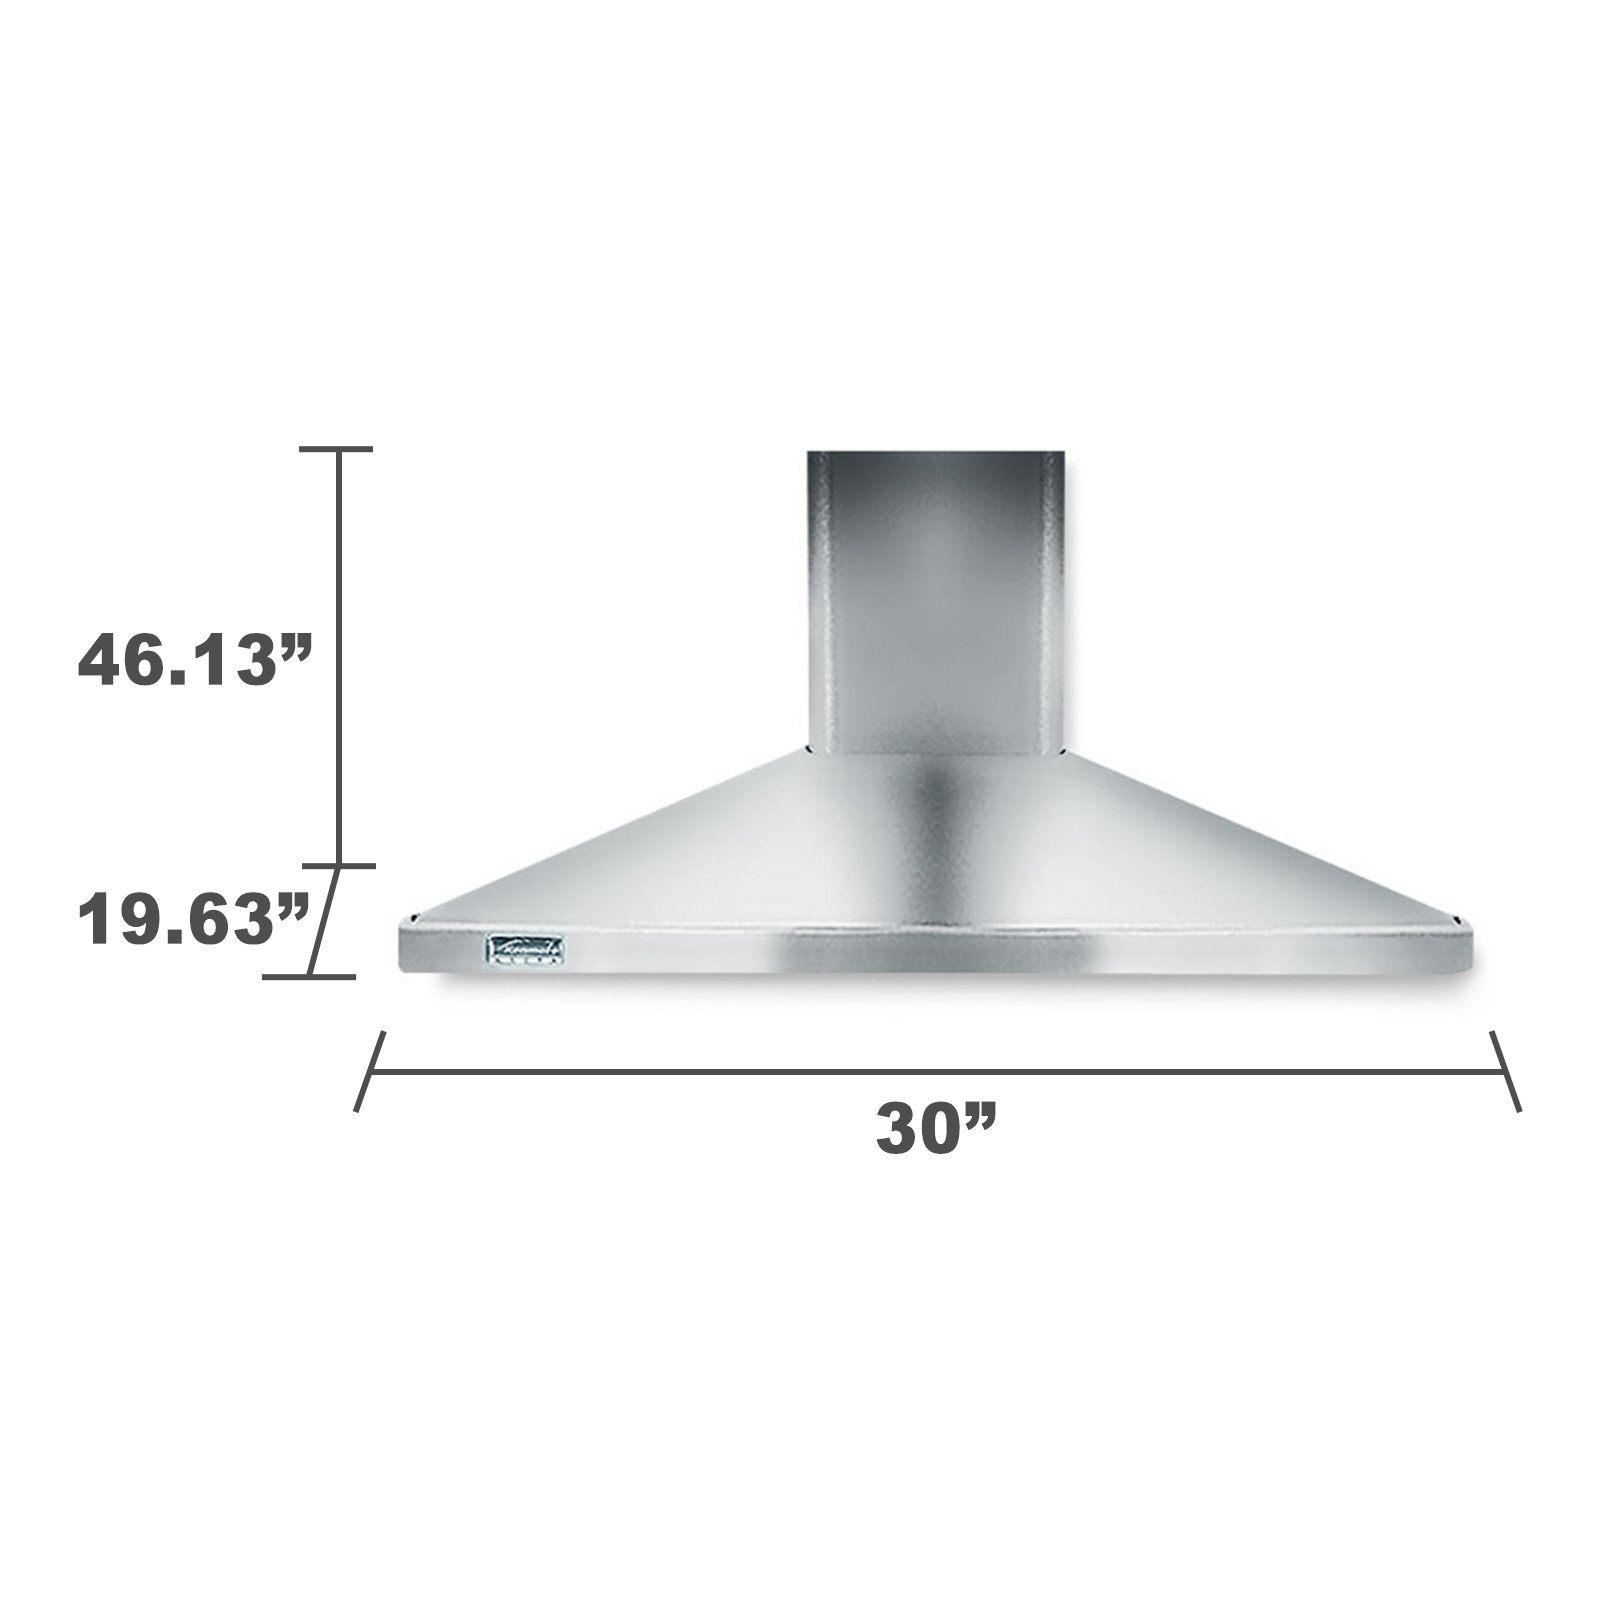 "Kenmore Elite 52303 30"" Italian-Design Wall-Mounted Range Hood"